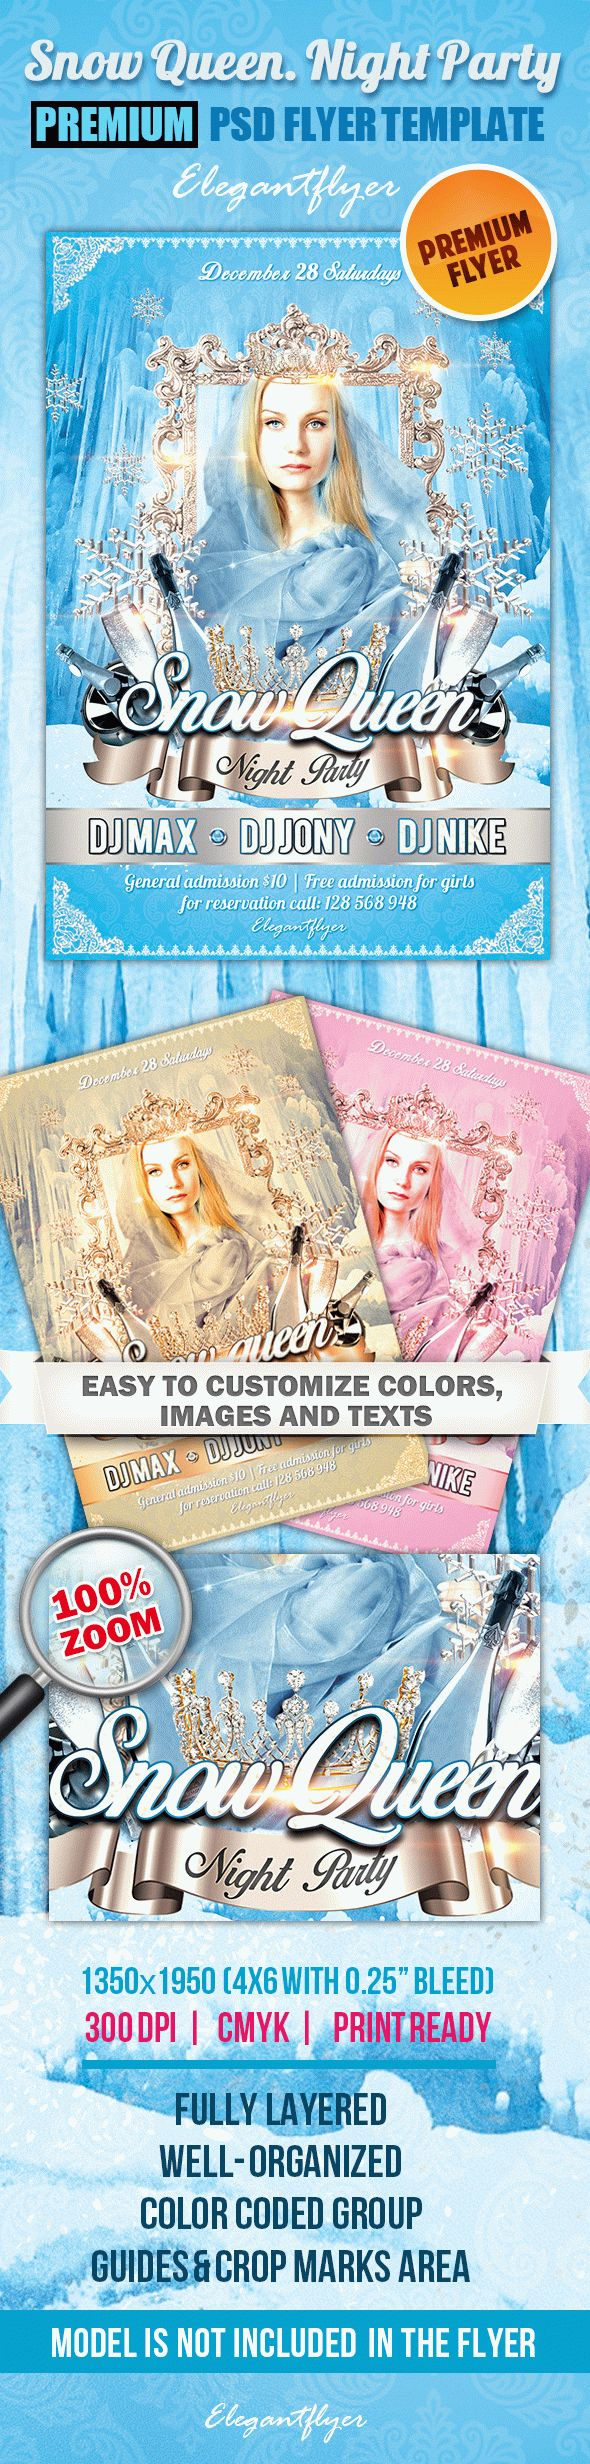 Snow Queen. Night Party PSD Template